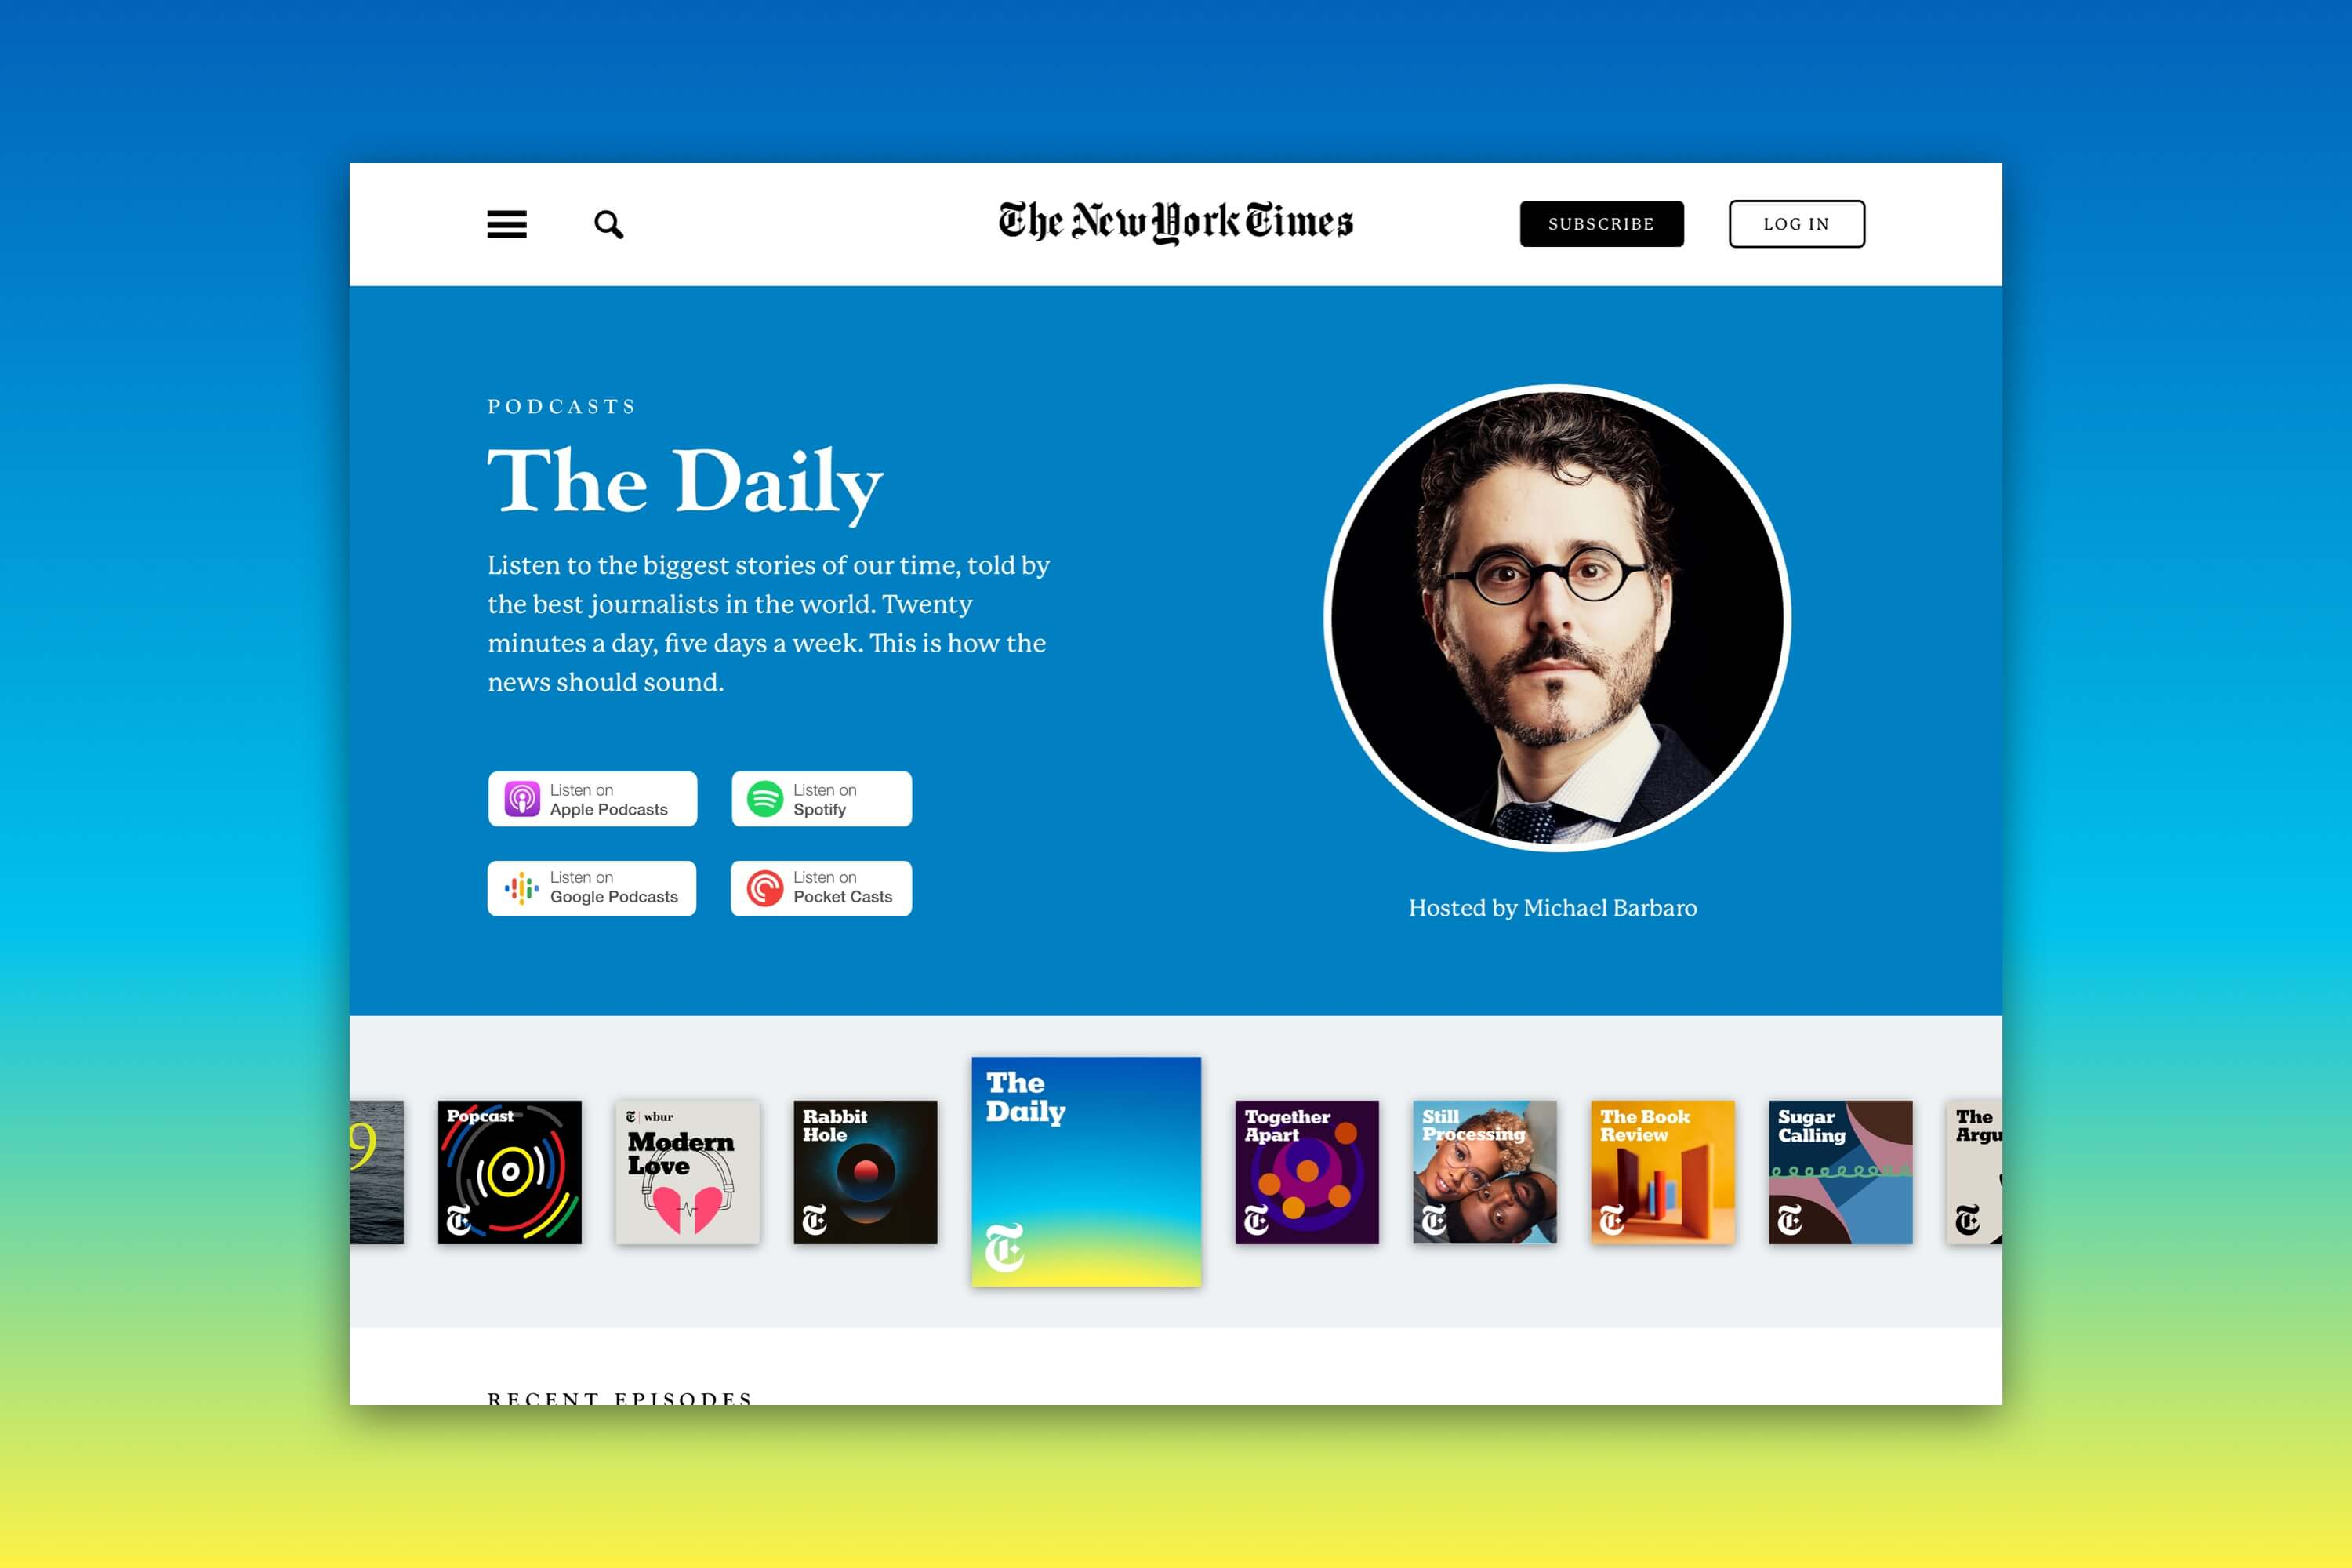 Redesigned header of The New York Times's podcast directory, featuring The Daily podcast.